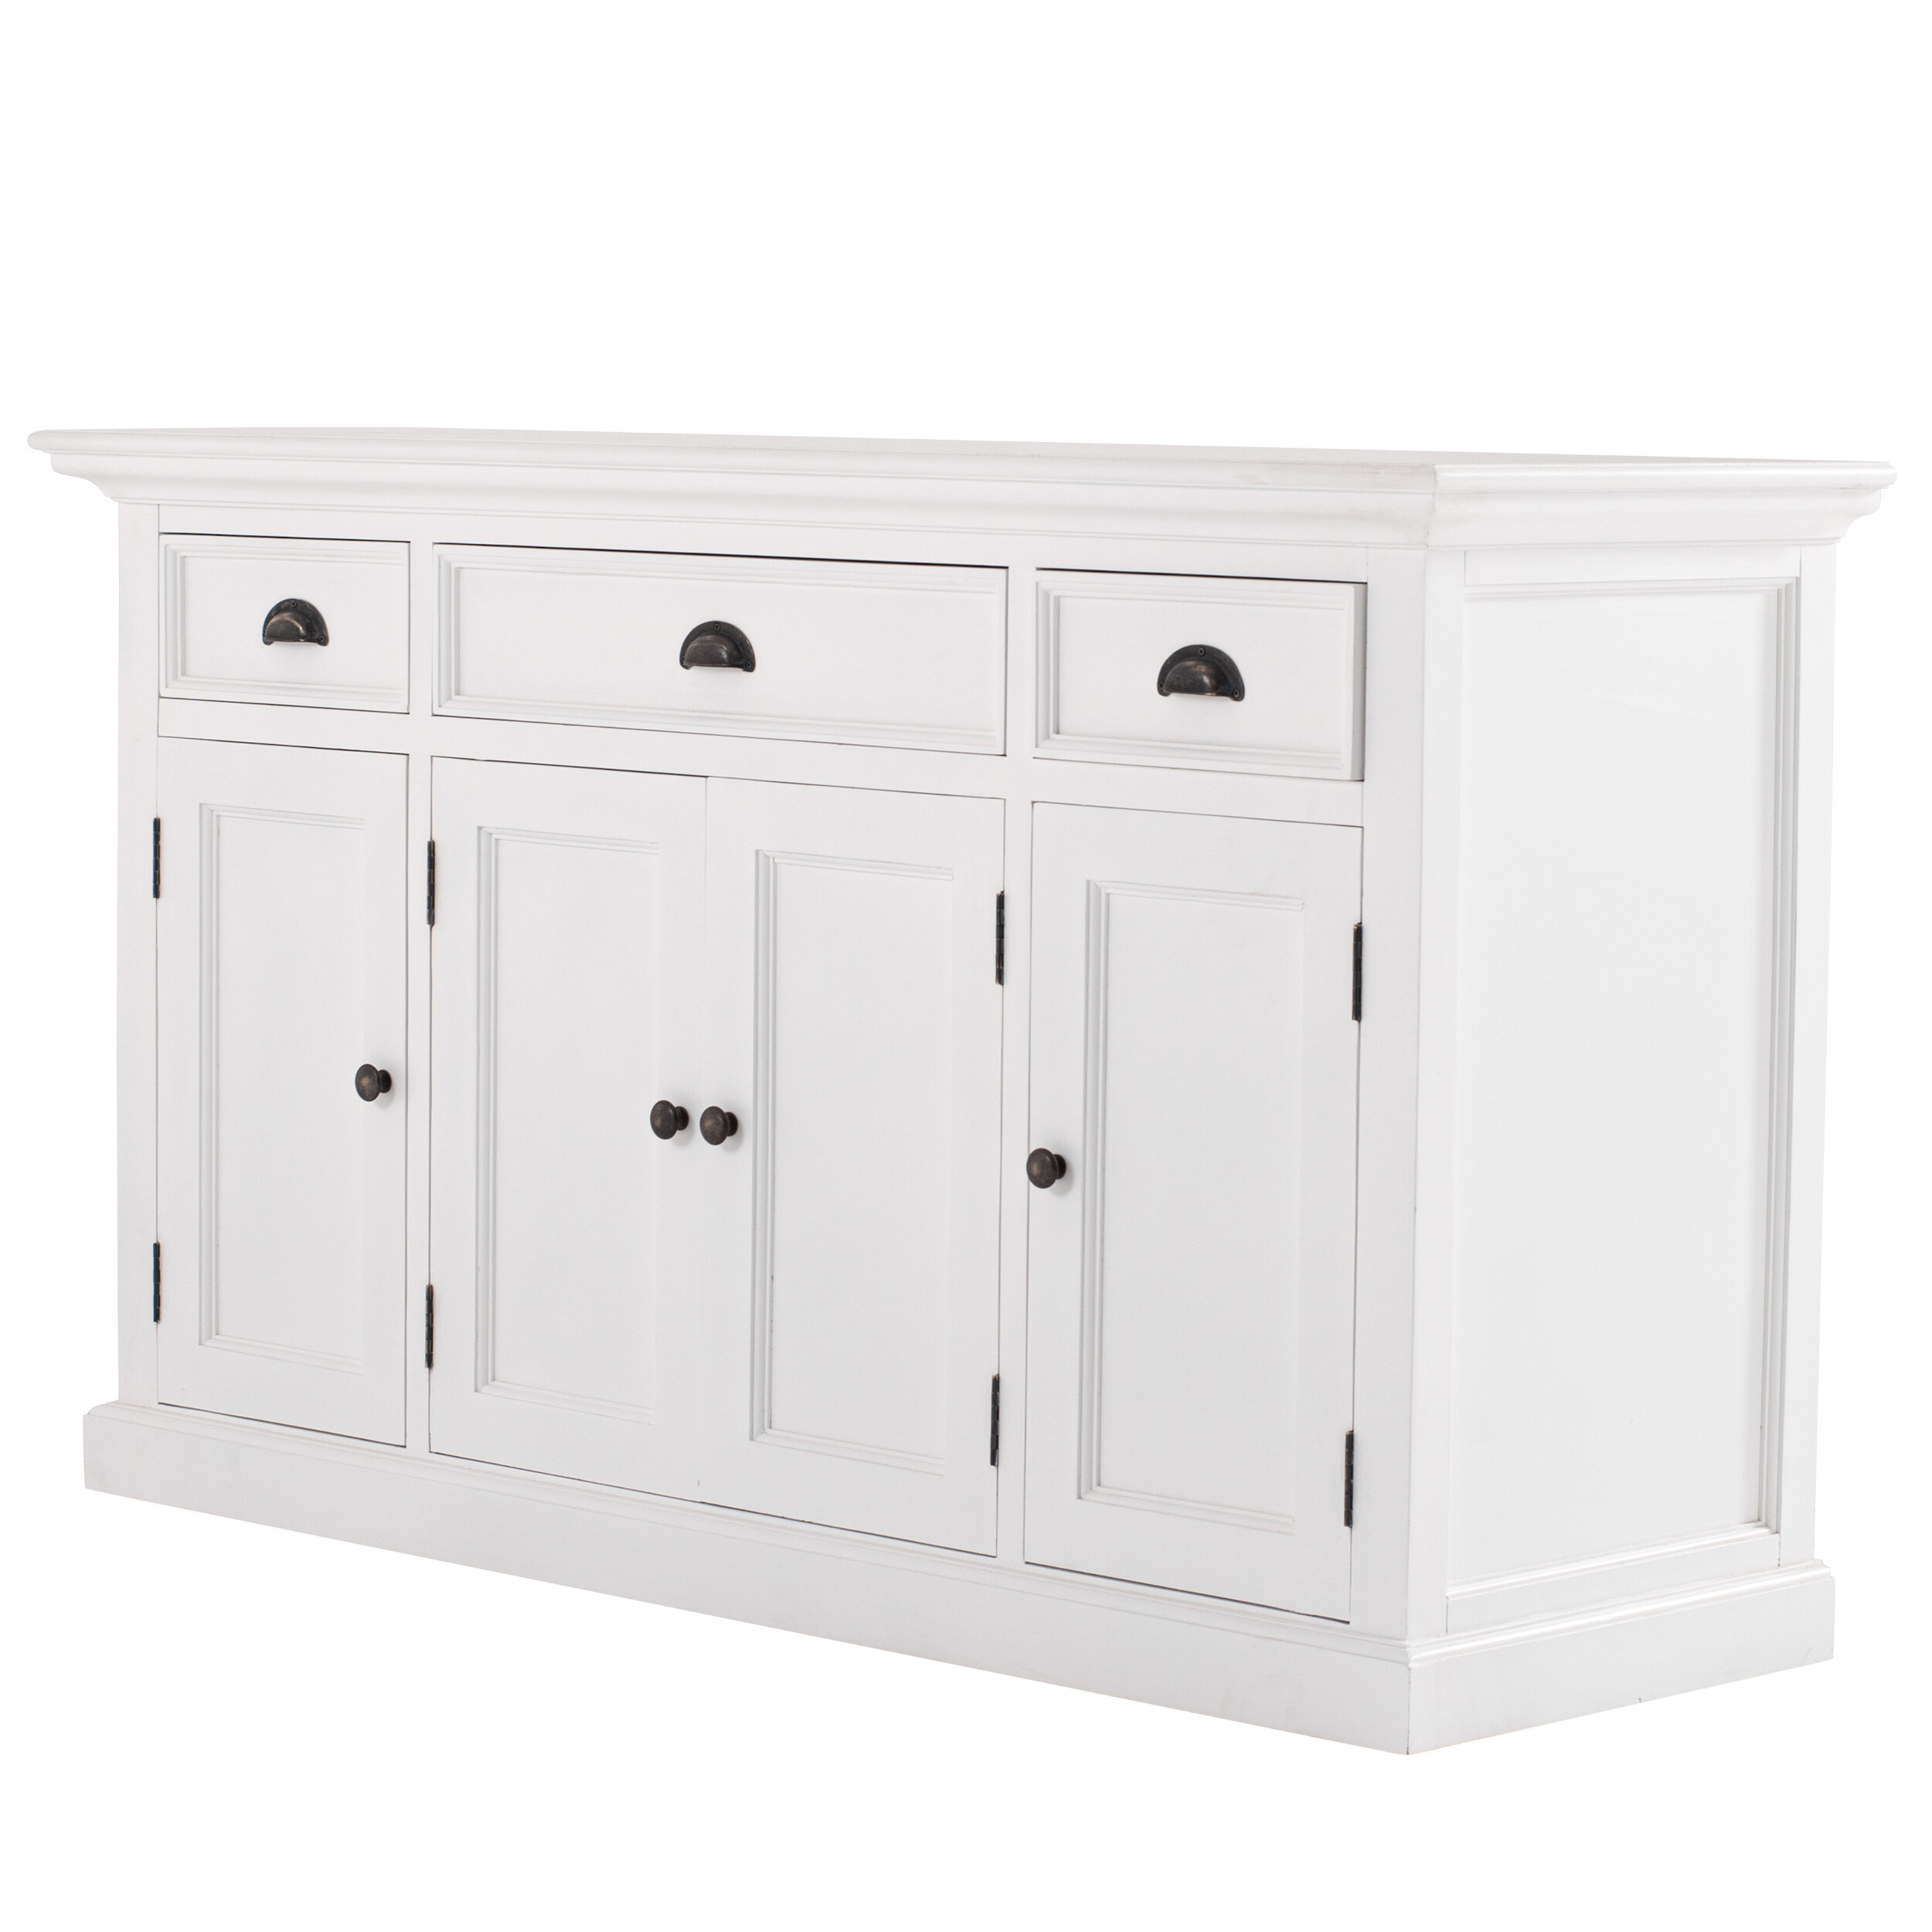 Beachcrest Home Amityville 57 09 Wide 3 Drawer Sideboard Wayfair